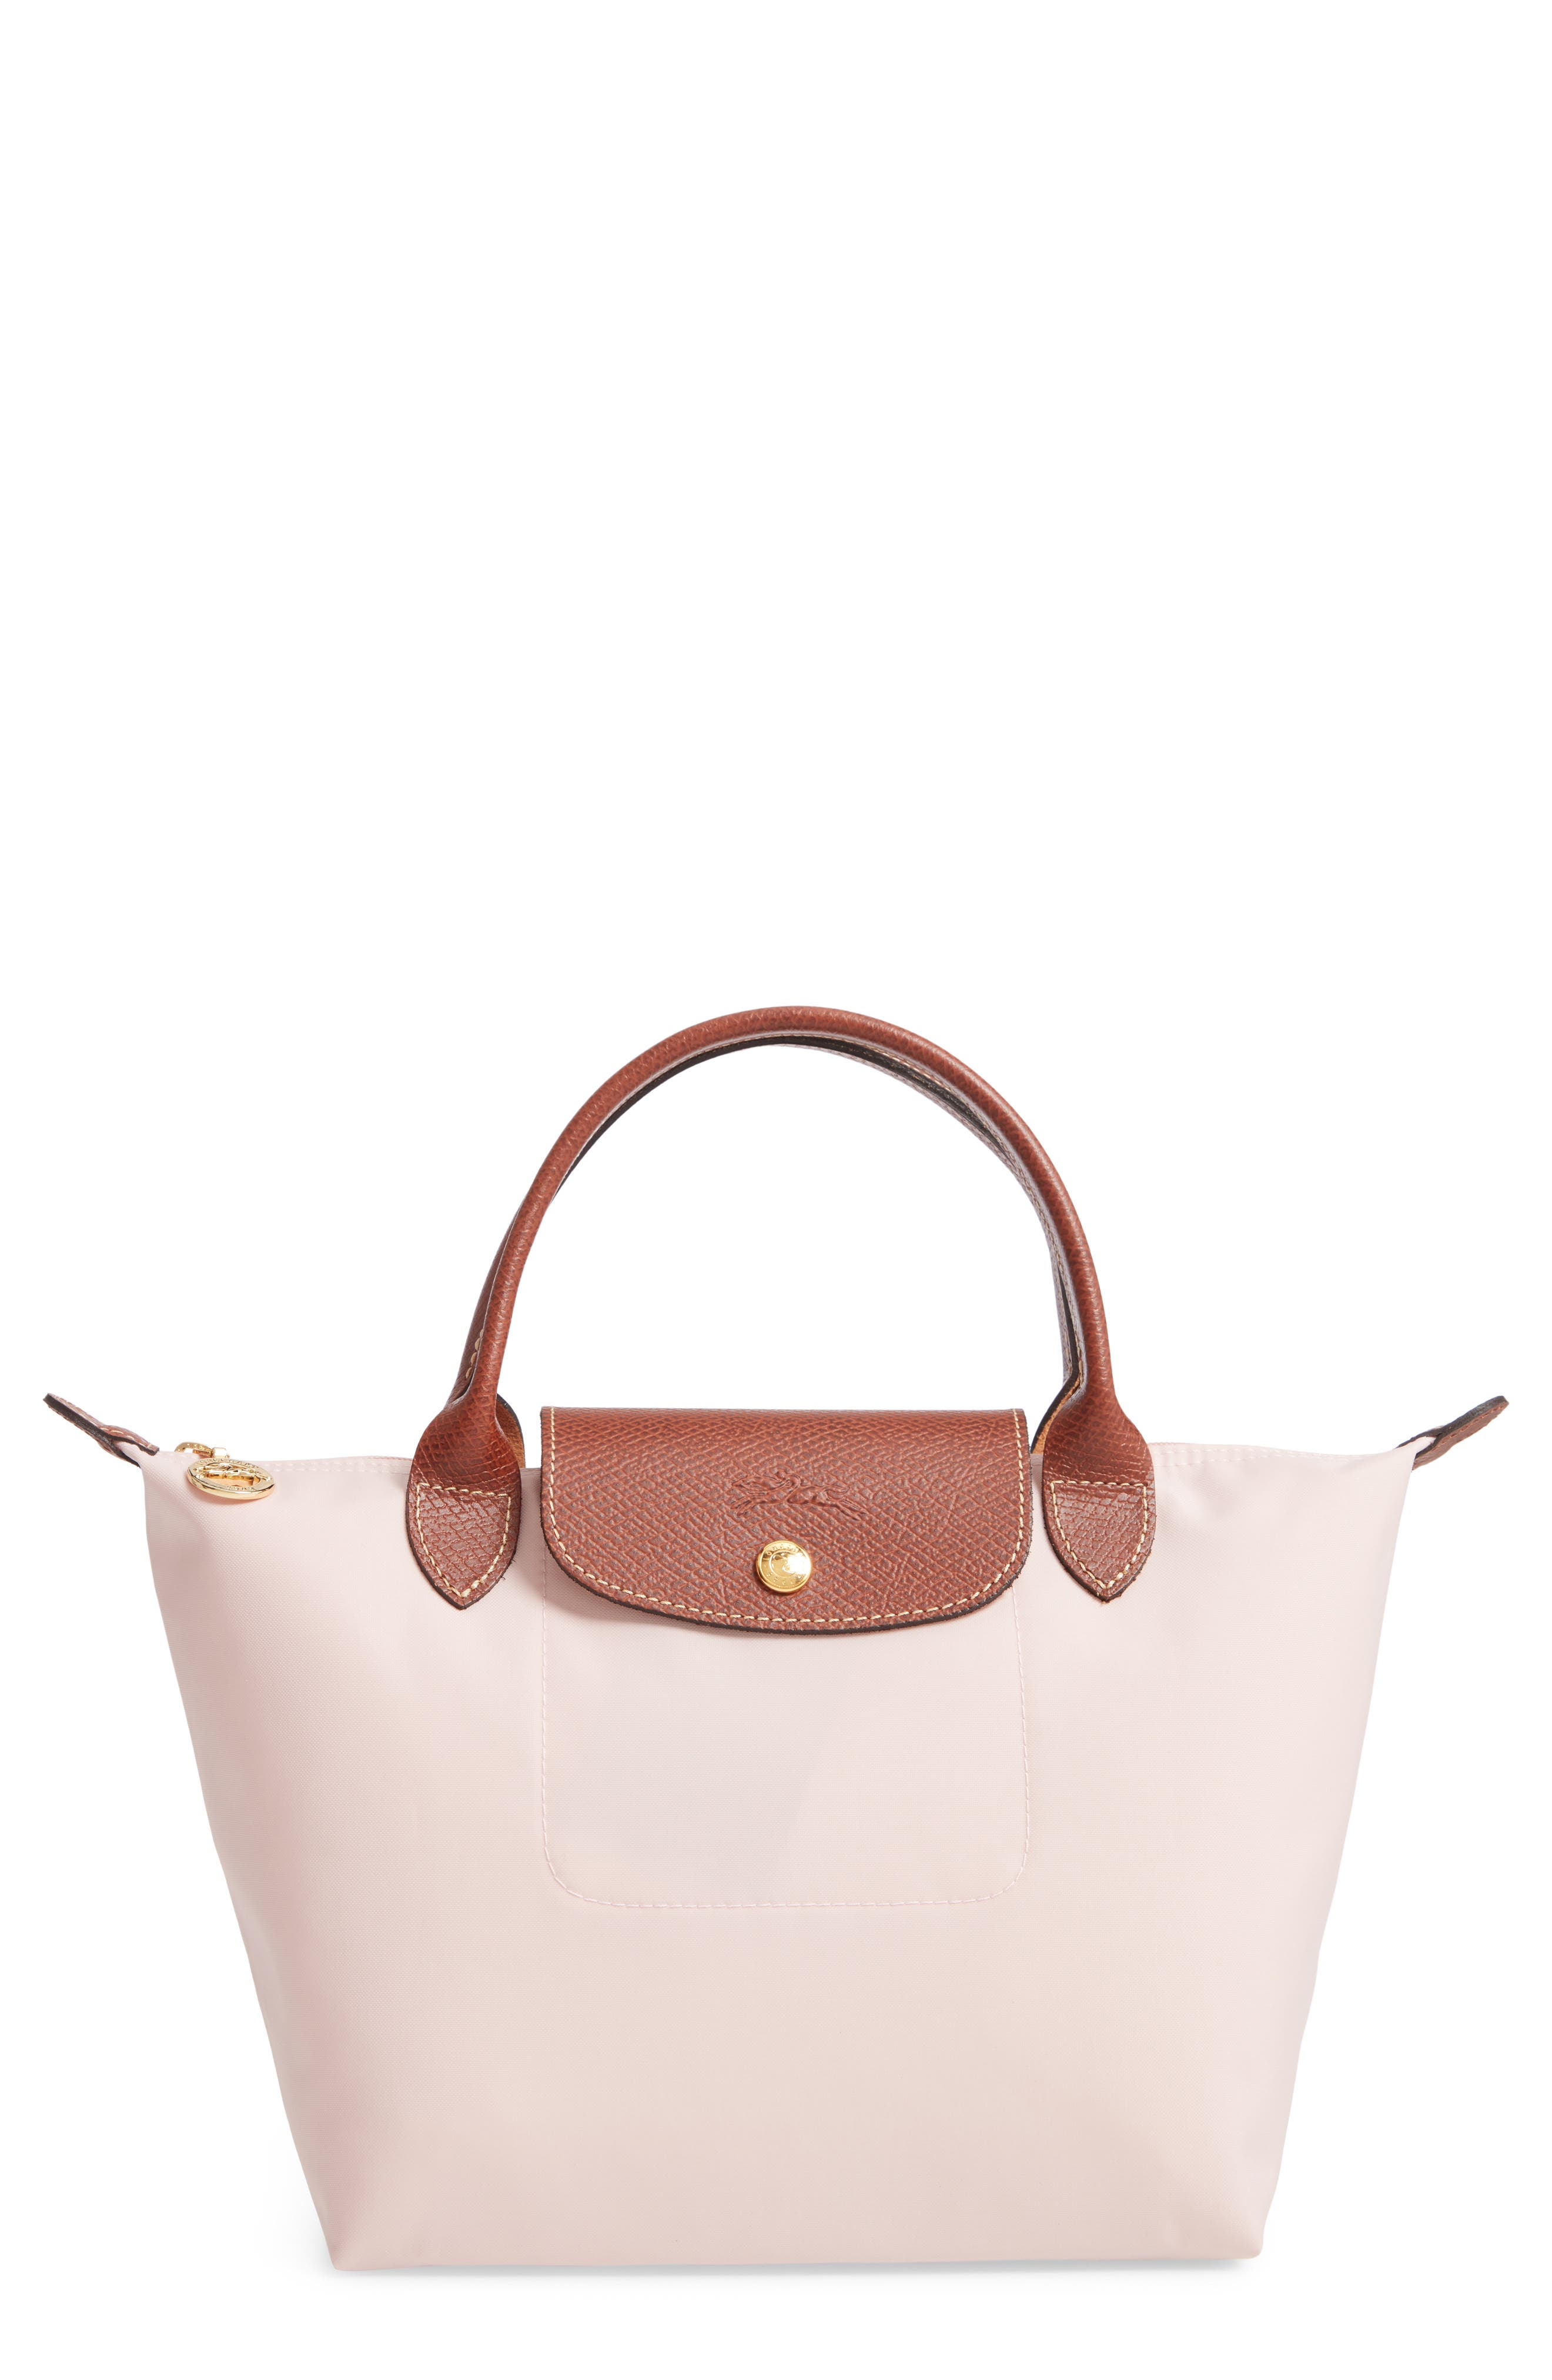 LONGCHAMP 'Small Le Pliage' Top Handle Tote, Main, color, PINK ICE